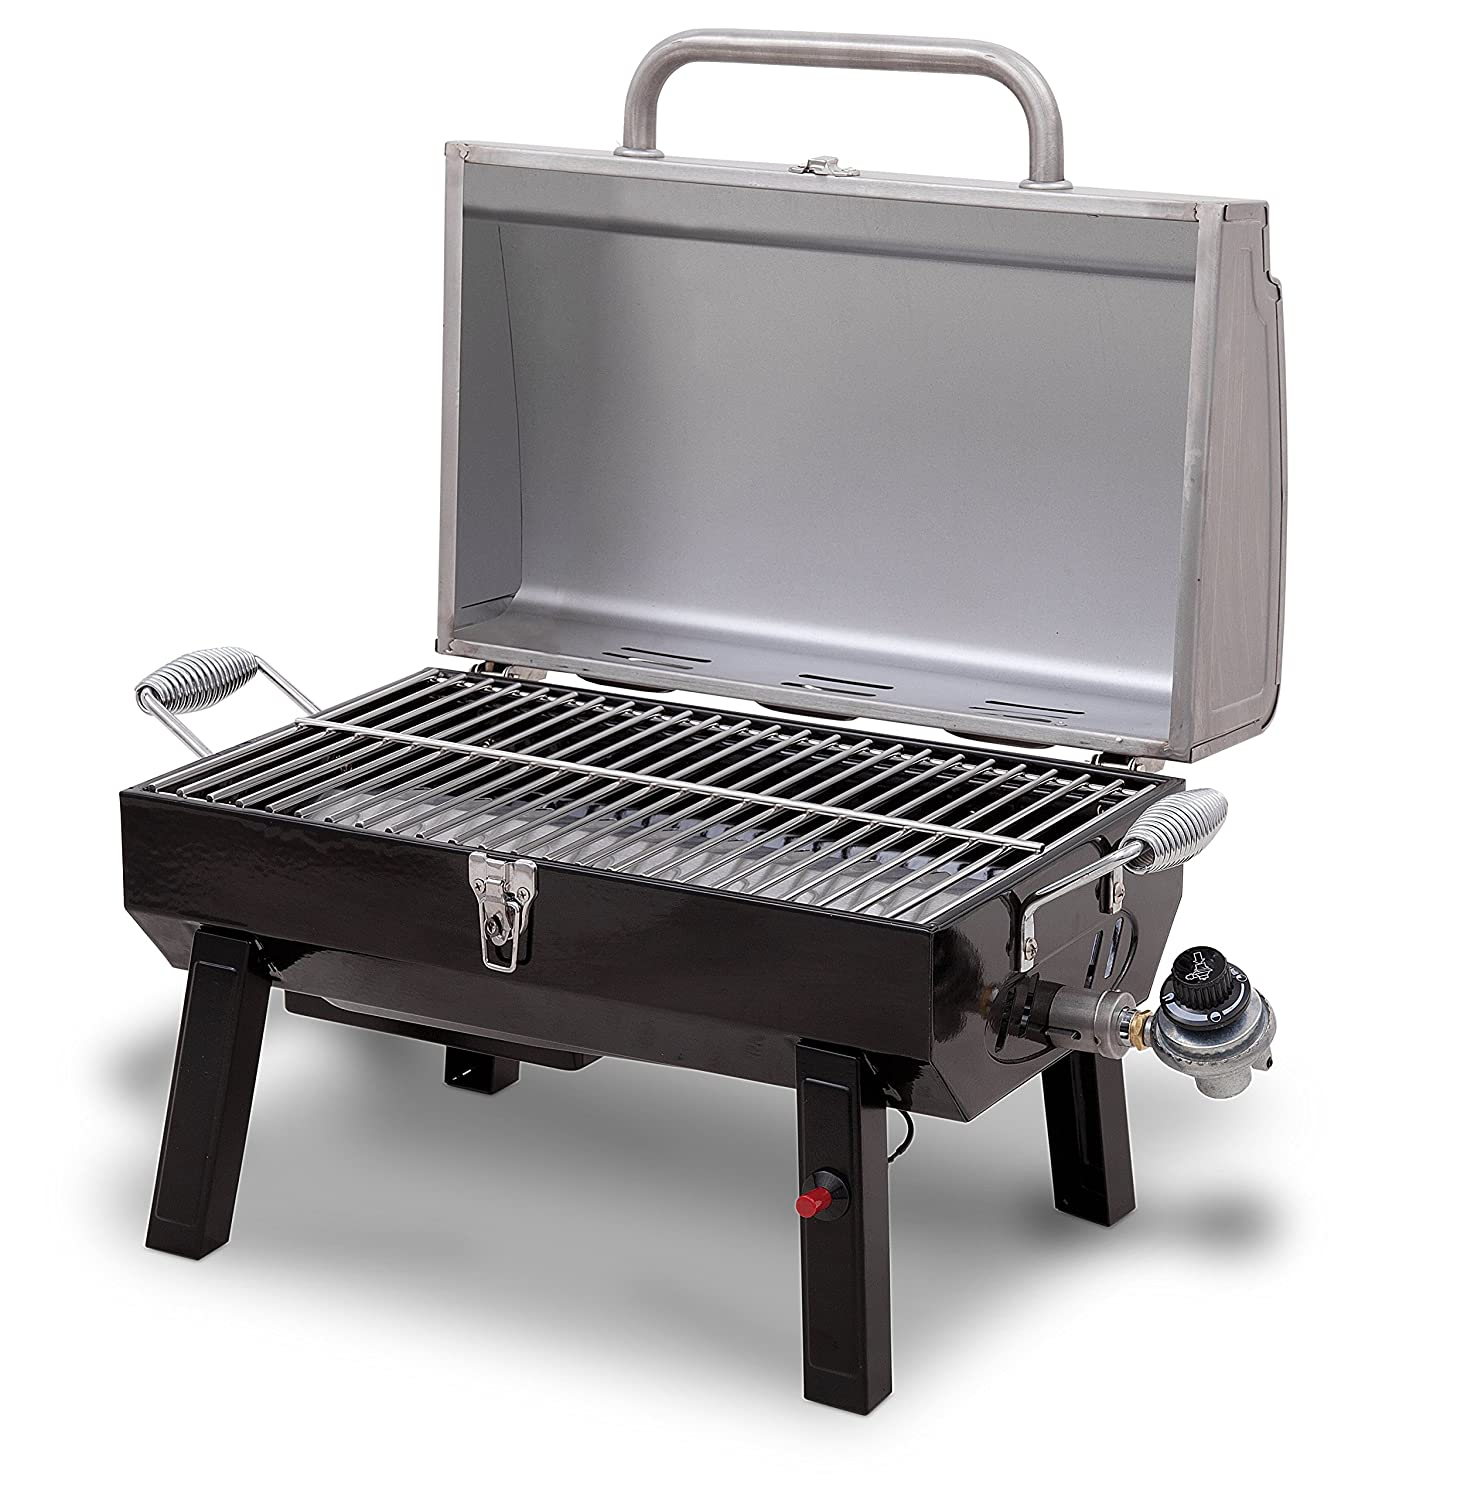 Delicieux Amazon.com: Char Broil Stainless Steel Portable Liquid Propane Gas Grill:  Garden U0026 Outdoor